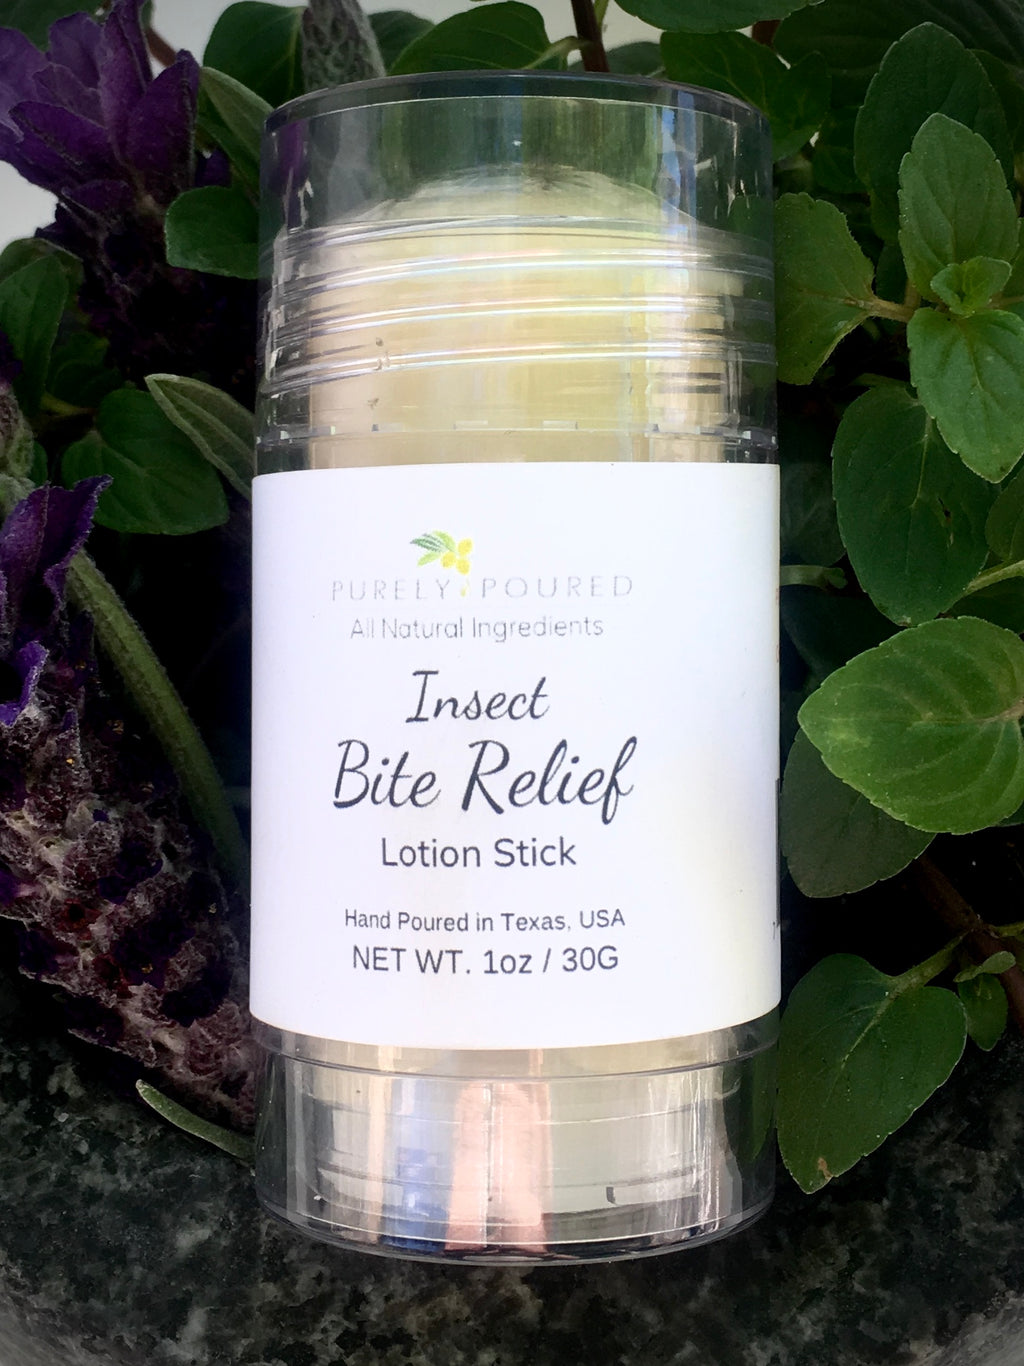 All Natural Insect Bite Relief Lotion Stick